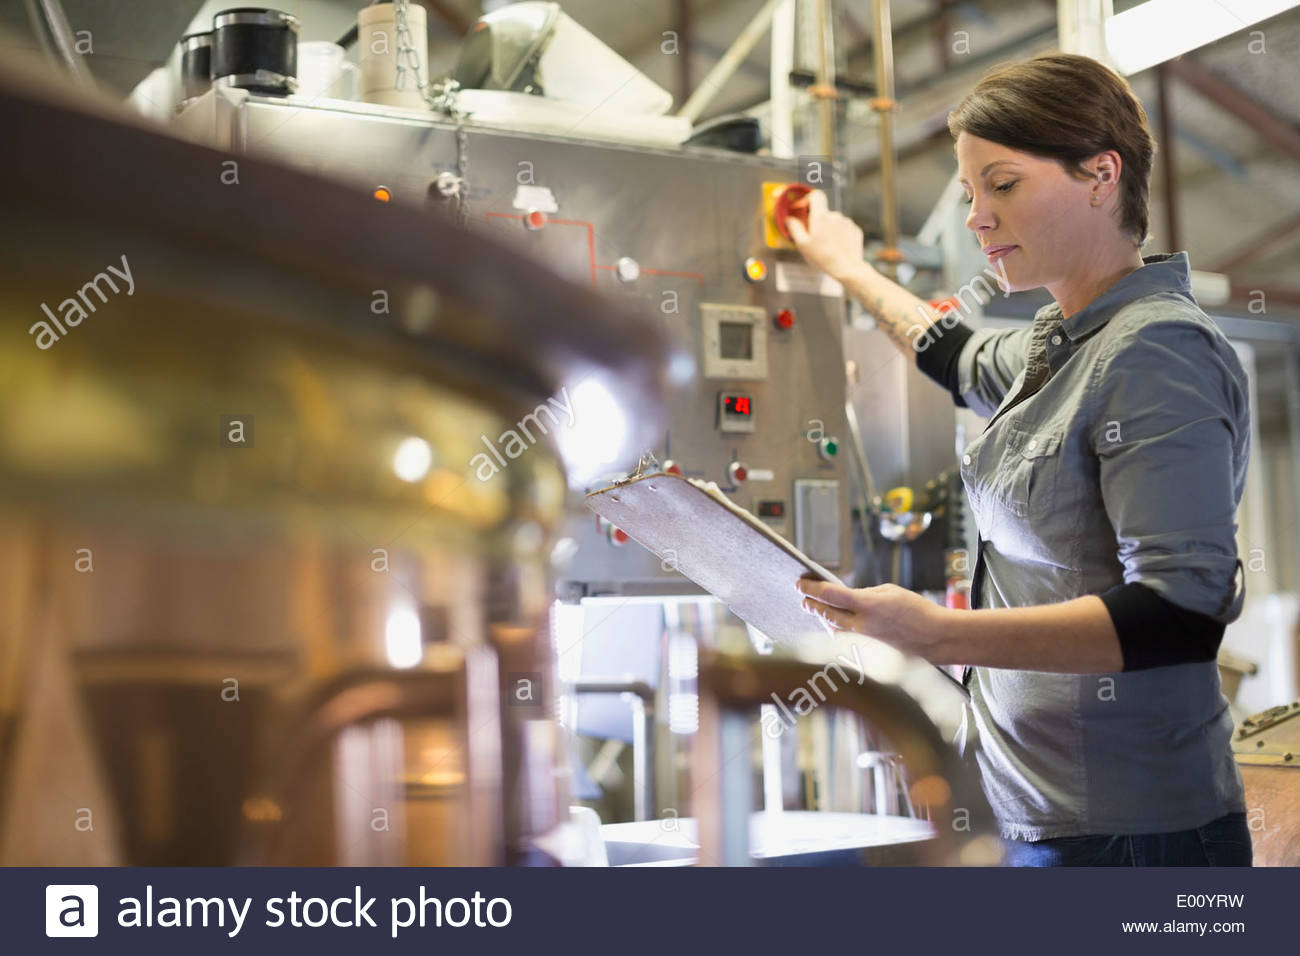 Brewery worker with clipboard operating machinery - Stock Image